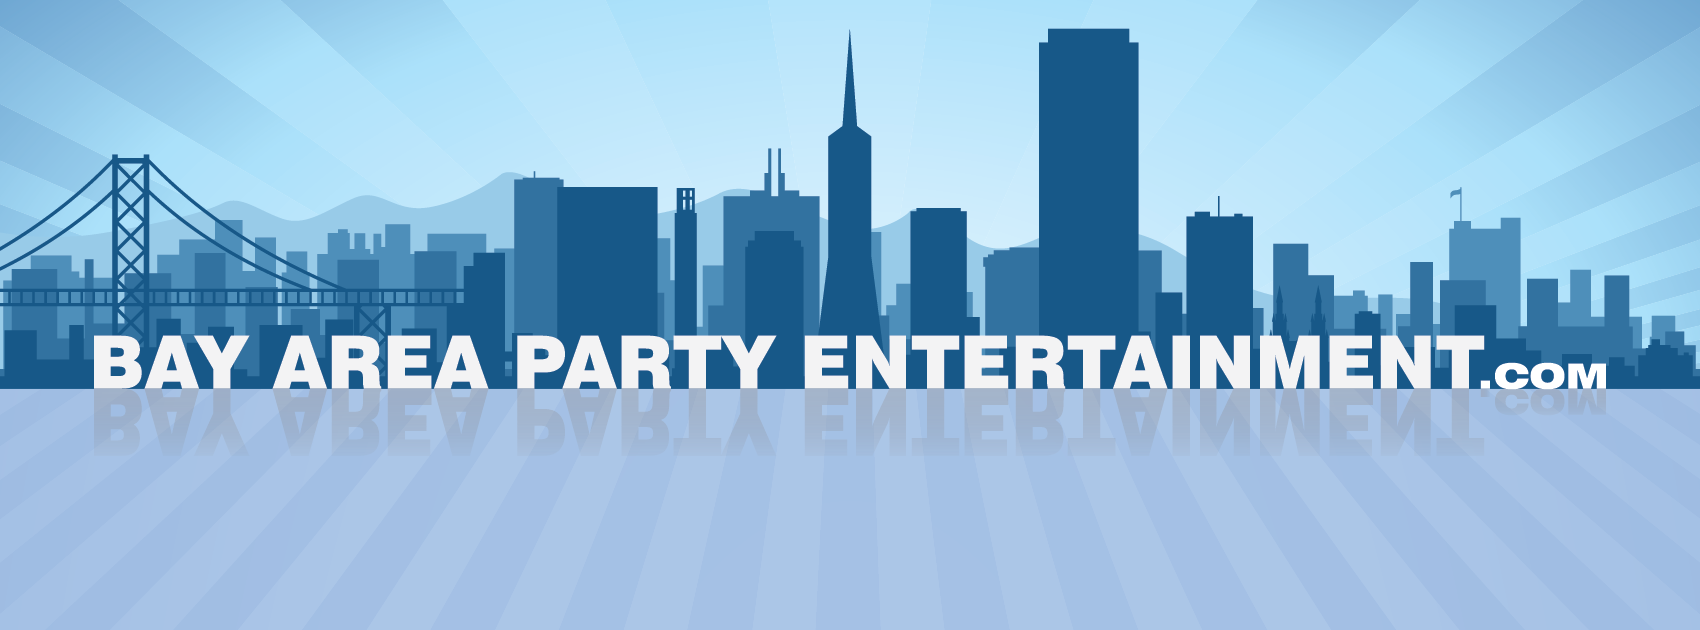 San Francisco Bay Area Party Entertainment Blog